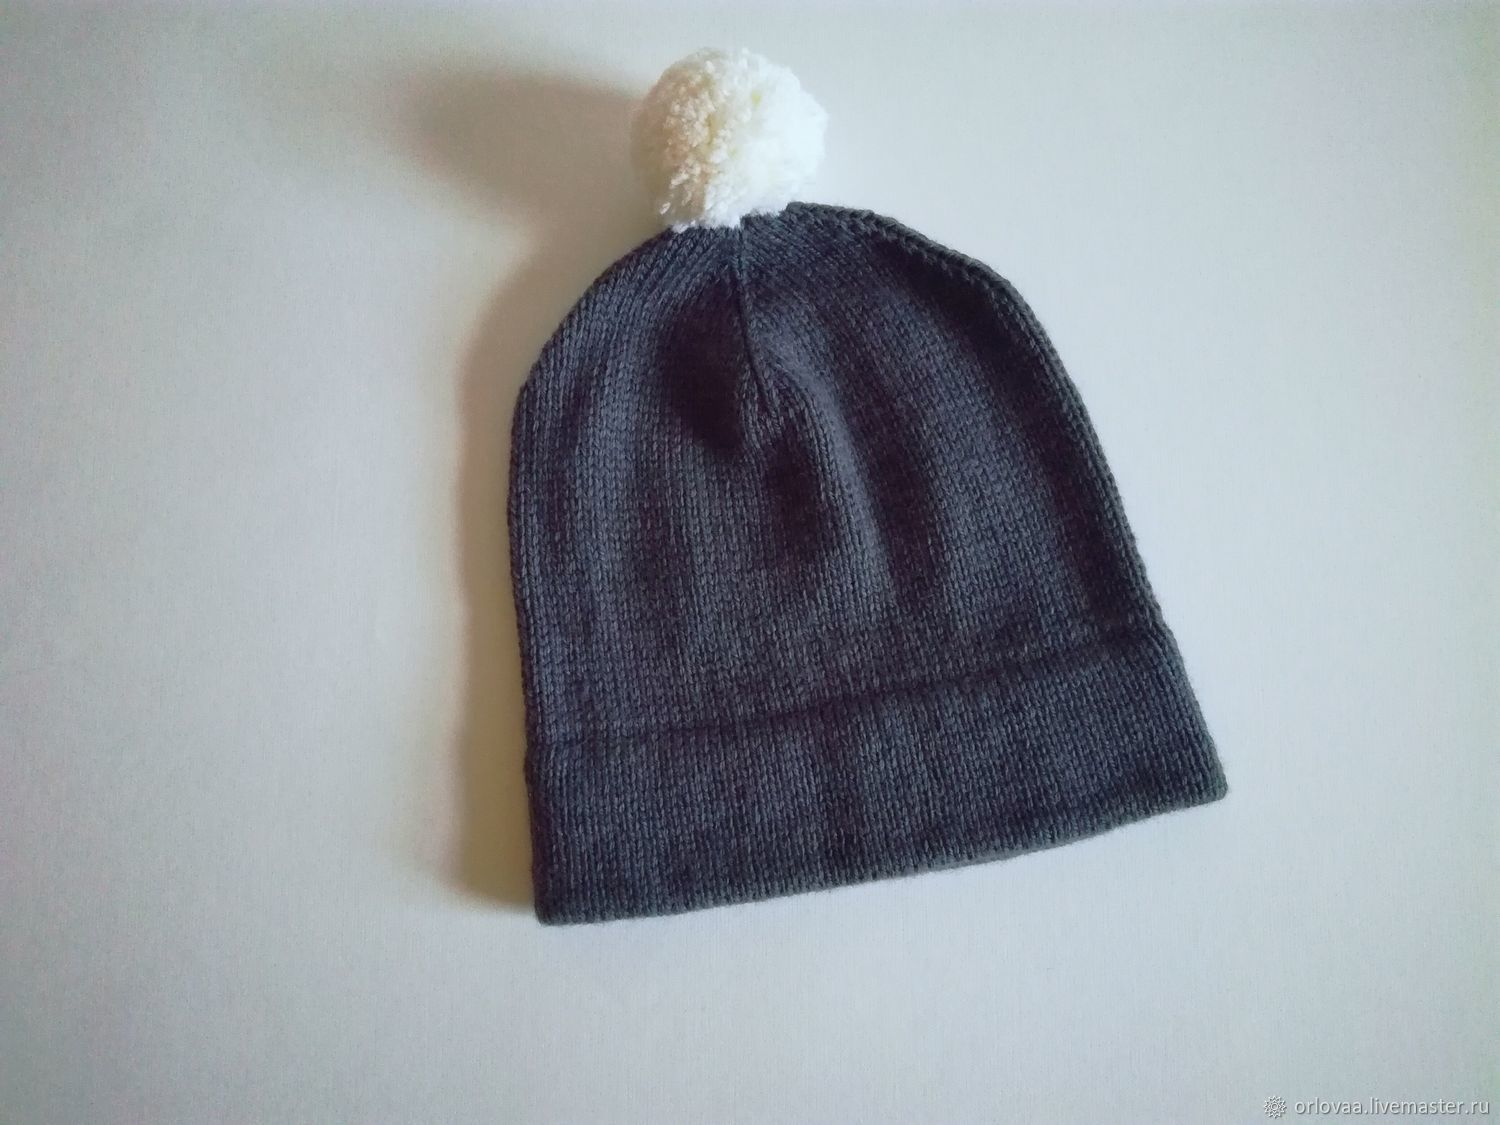 Knitted long hat 'dark grey', Caps, Moscow,  Фото №1